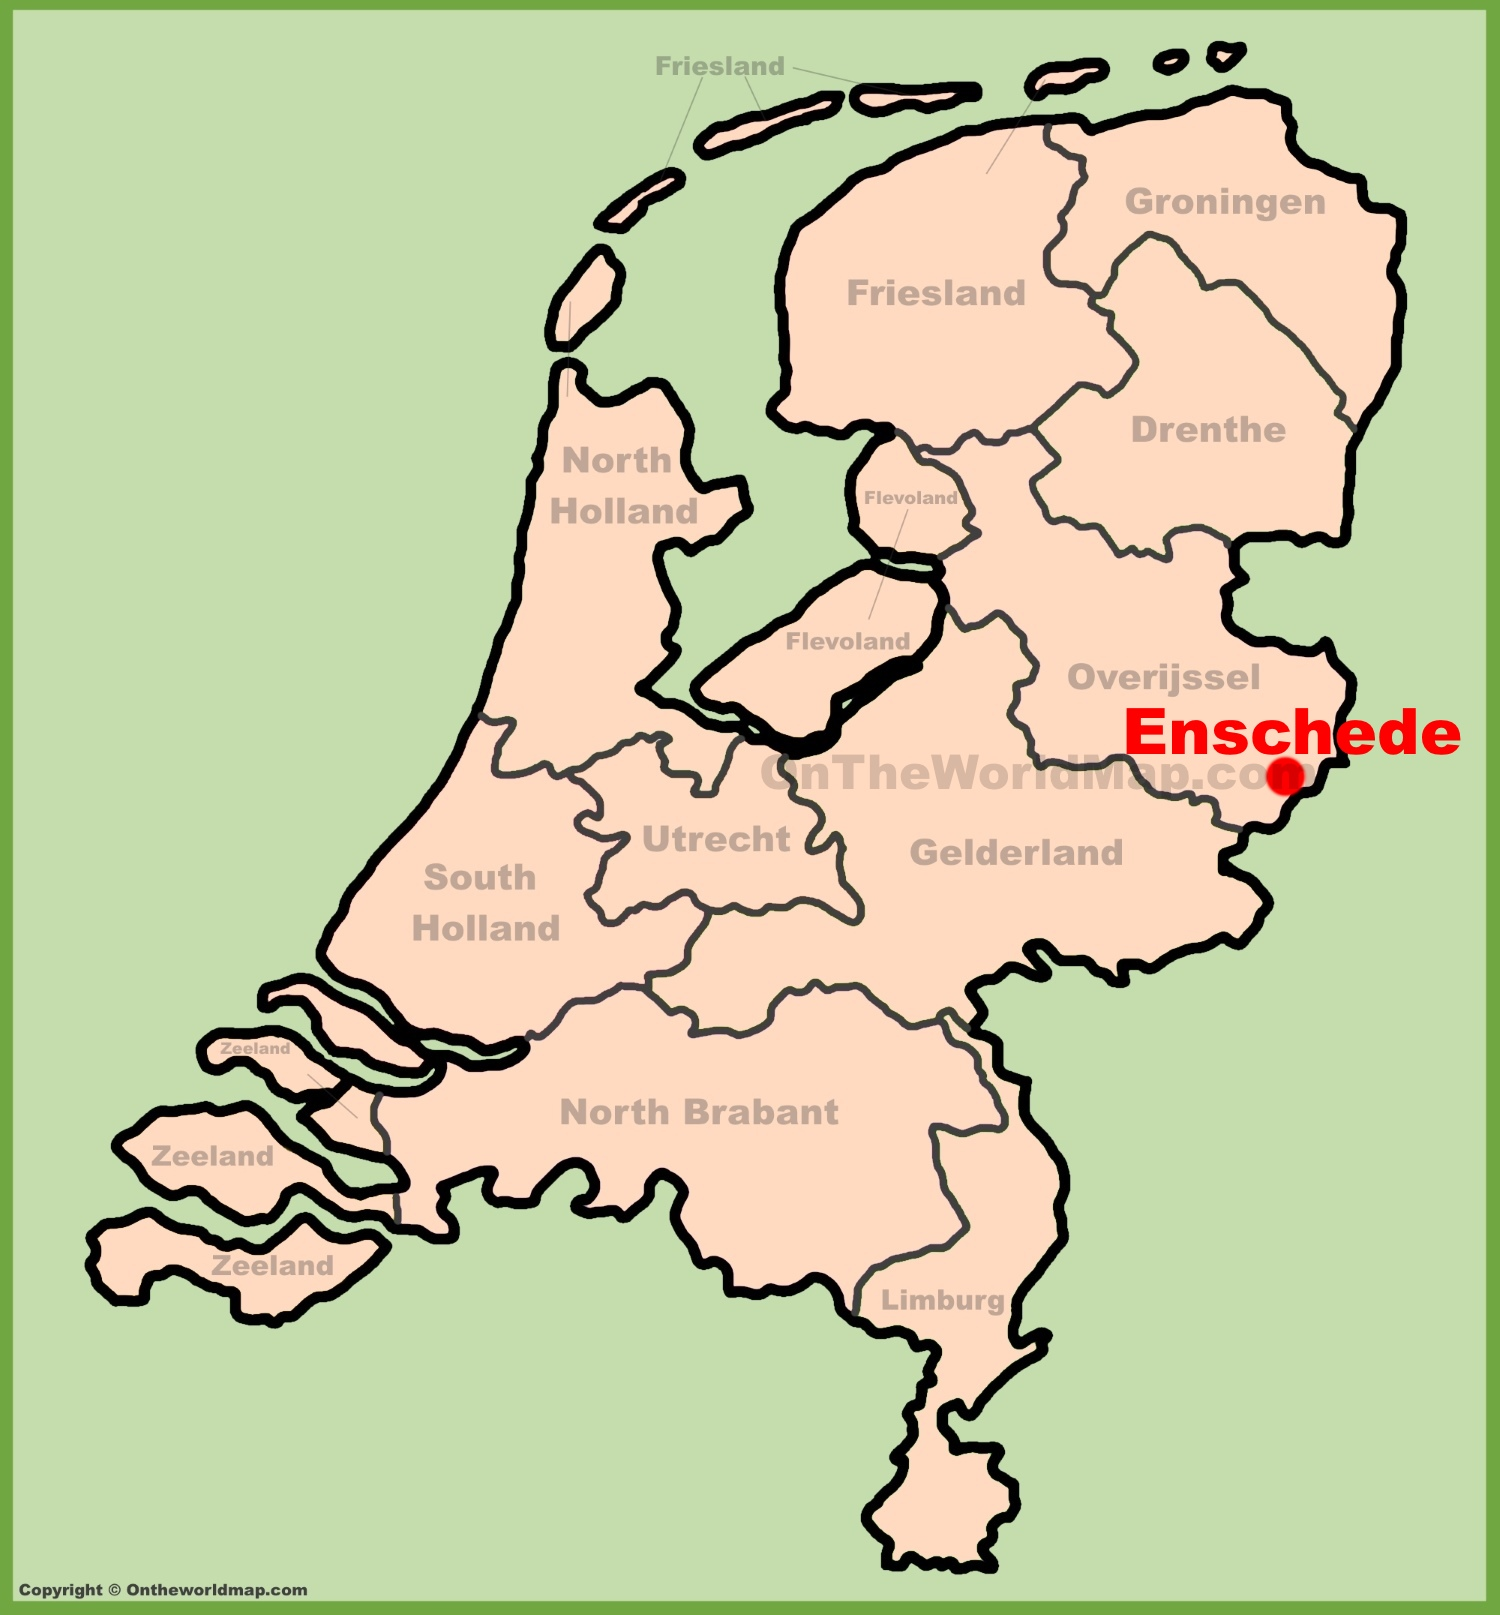 Enschede location on the Netherlands map